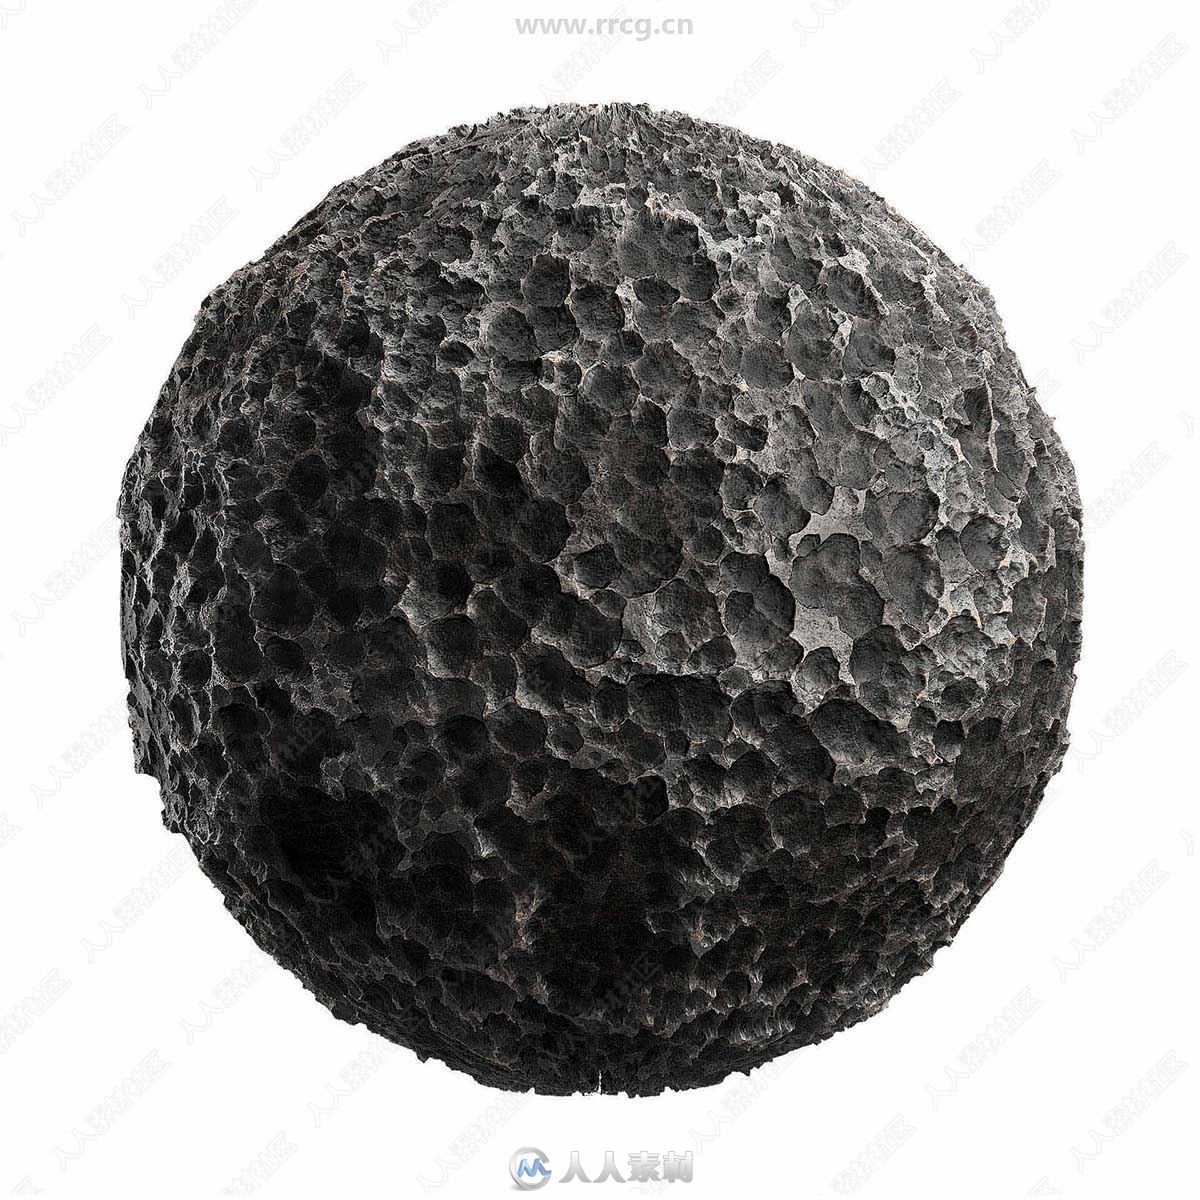 black_volcanic_rock_19_41_render.jpg